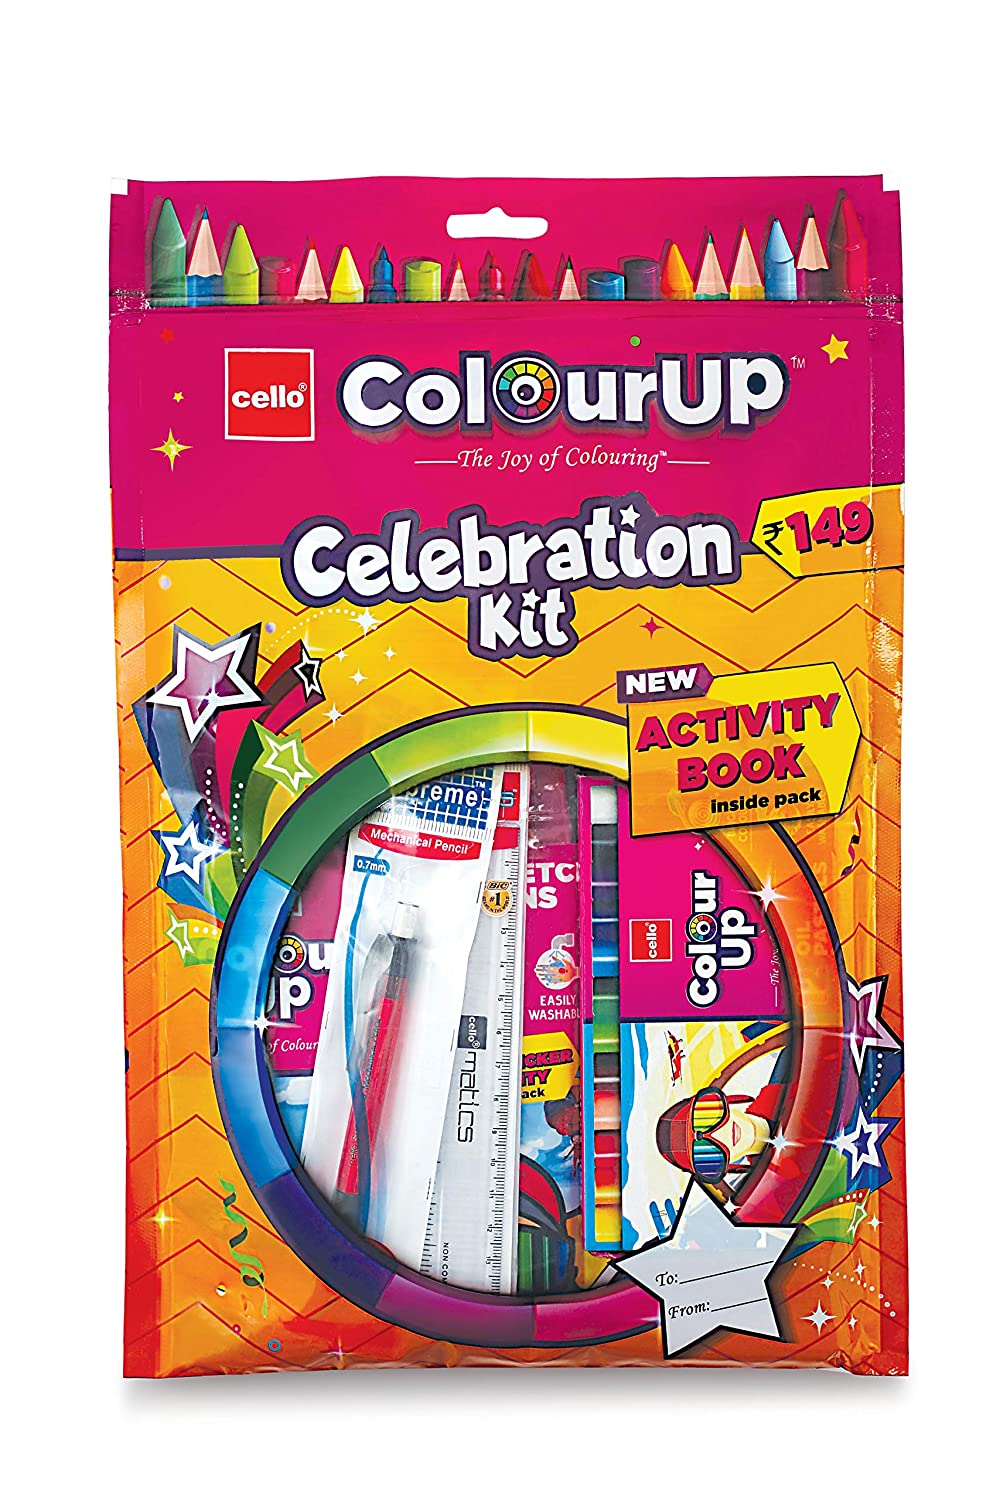 Cello ColourUp Celebration Kit - Gift Pack|Colouring Kit for Kids|Combo Pack with Colours and Activity Book | Hobby Stationery for Home and School